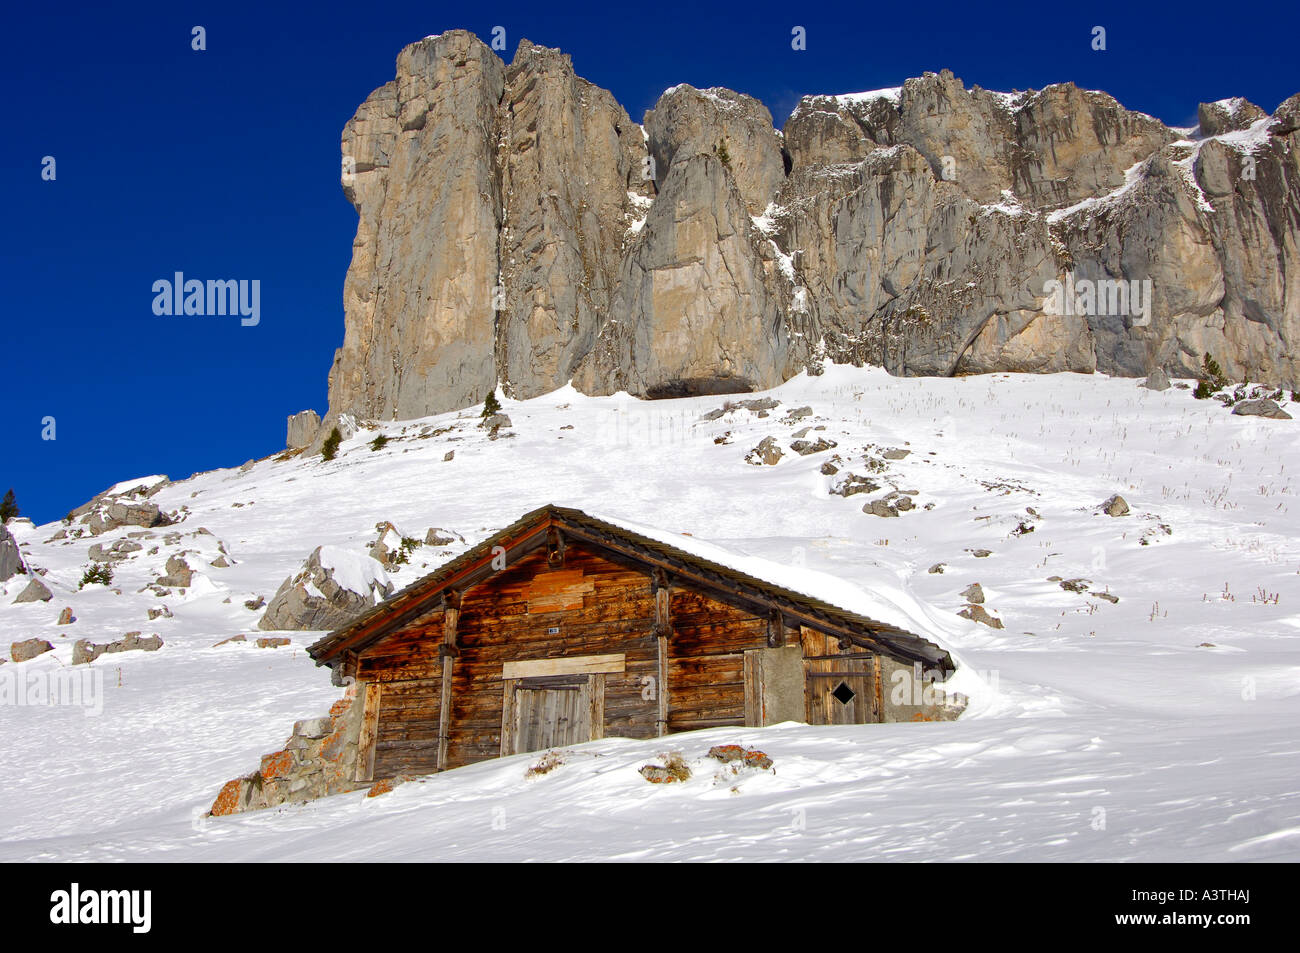 Winter time at peak Tour d'Ai, Swiss alps, Switzerland - Stock Image